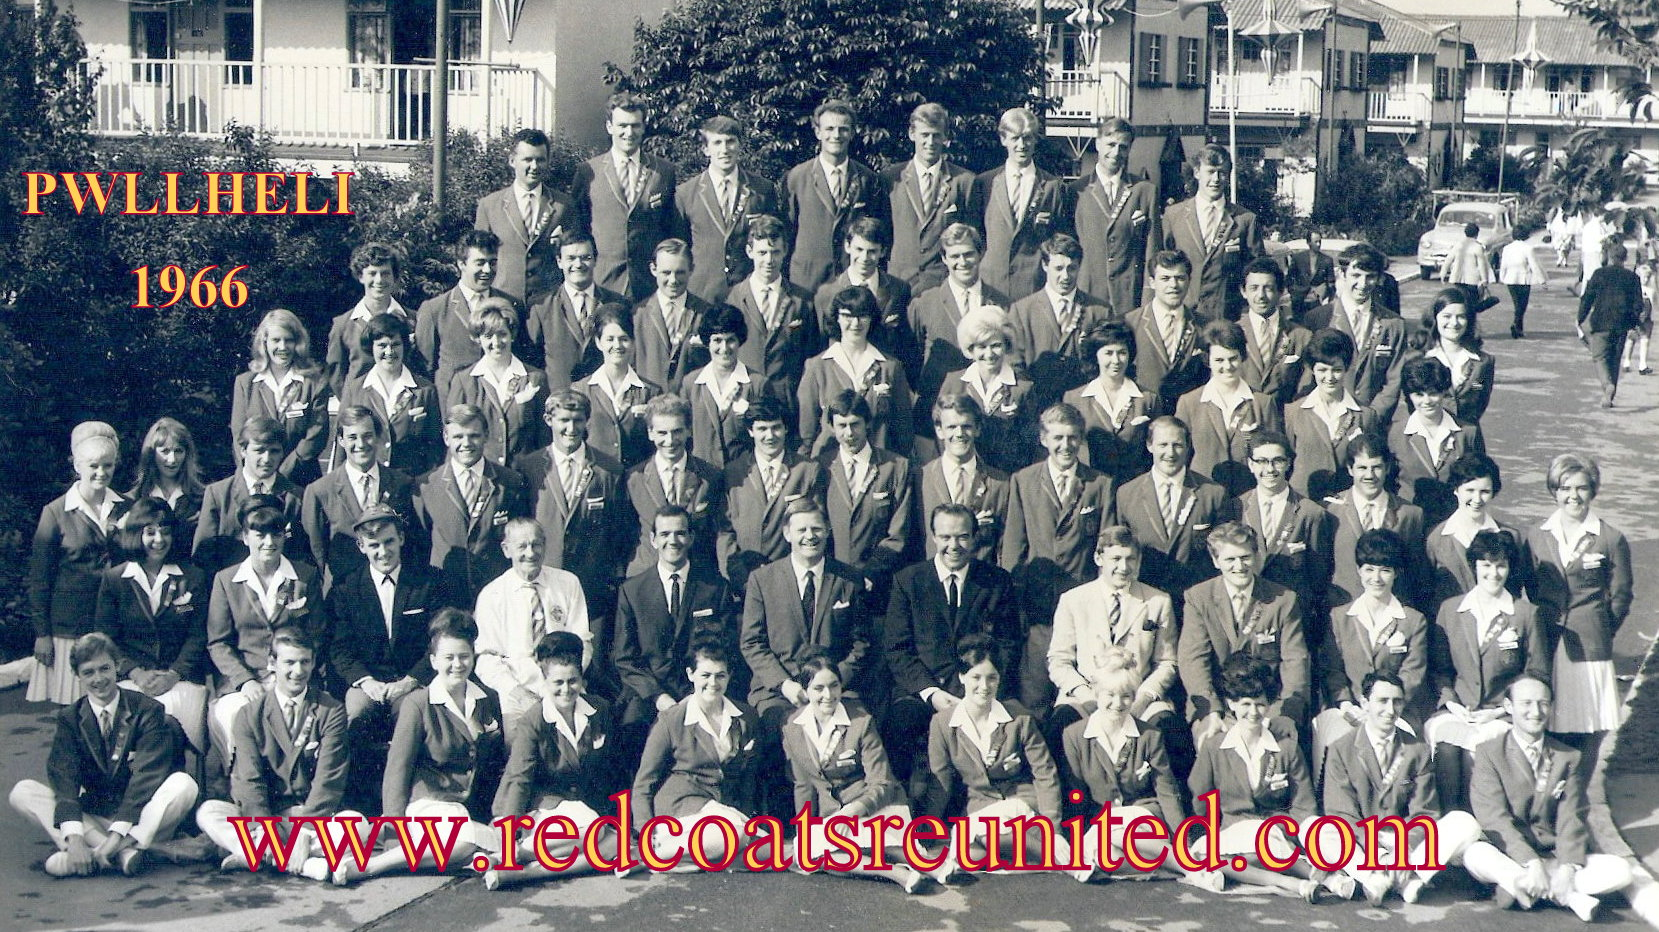 BUTLINS PWLLHELI REDCOATS 1966 at Redcoats Reunited